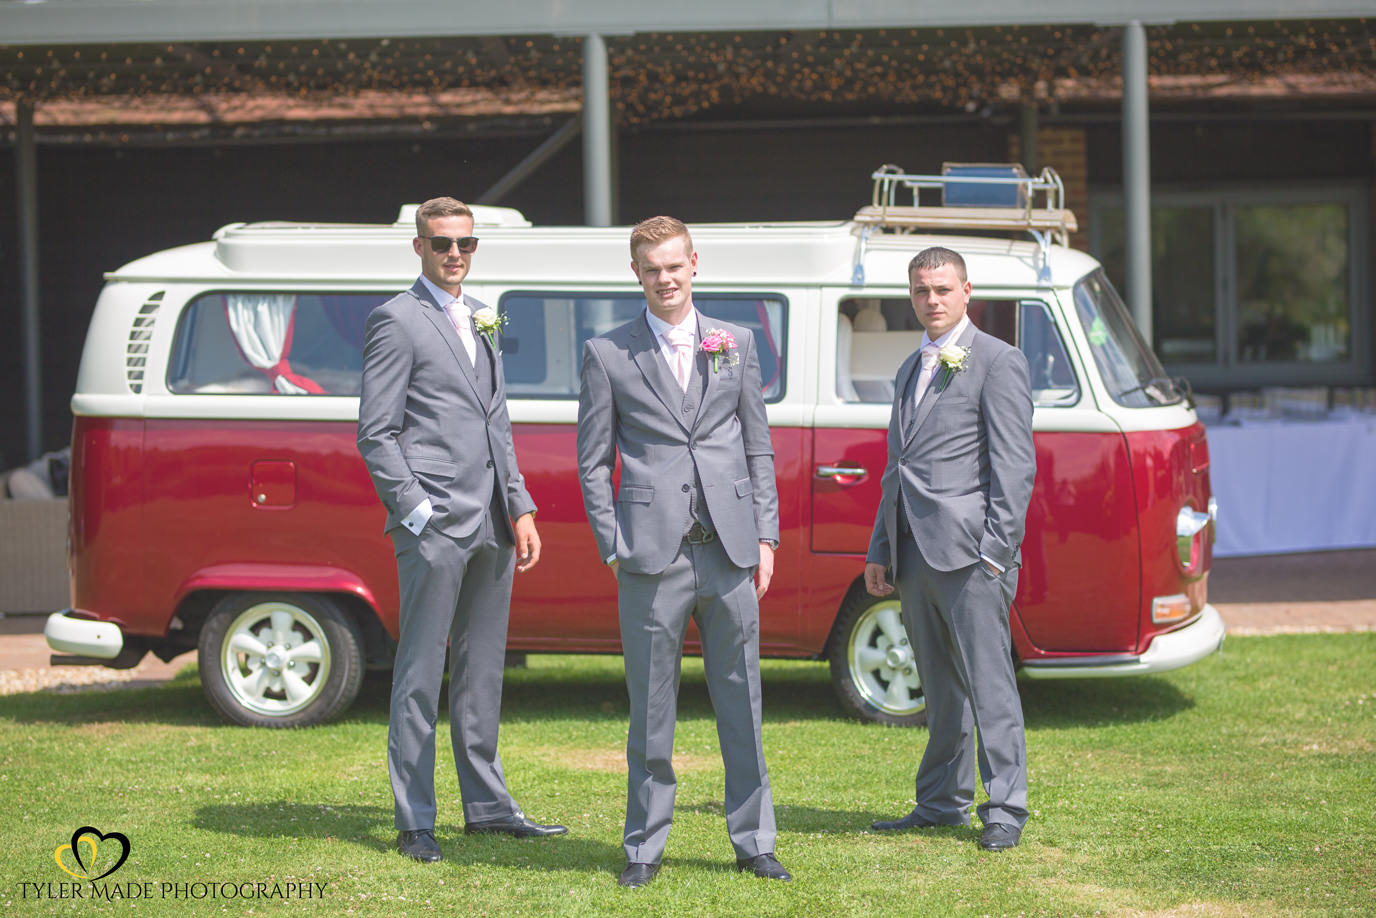 The Groom and Groomsmen at The Gardens in Yalding